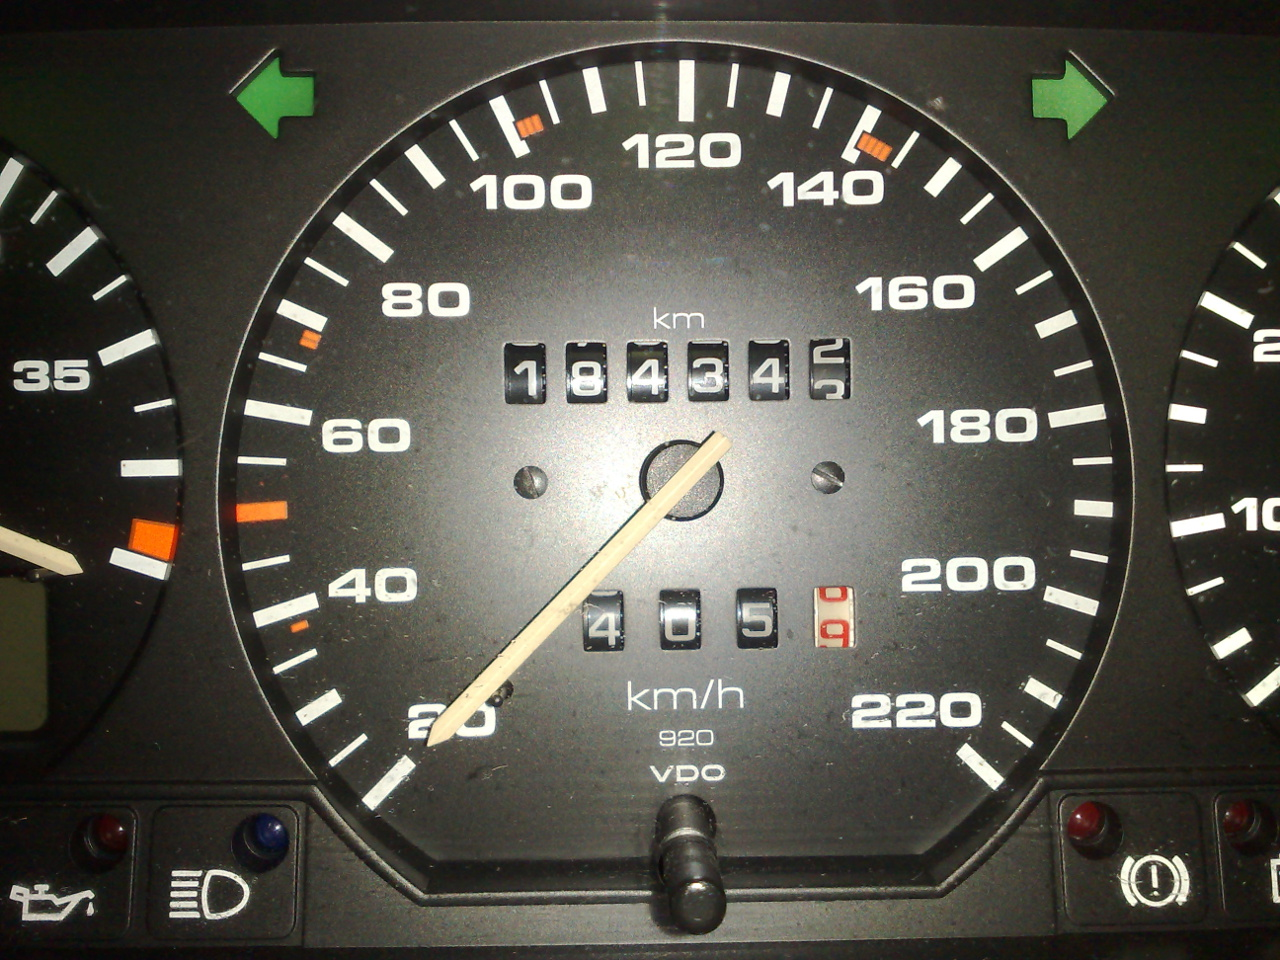 FileMetric speedometer from a 1992 Eurospec Passat B3